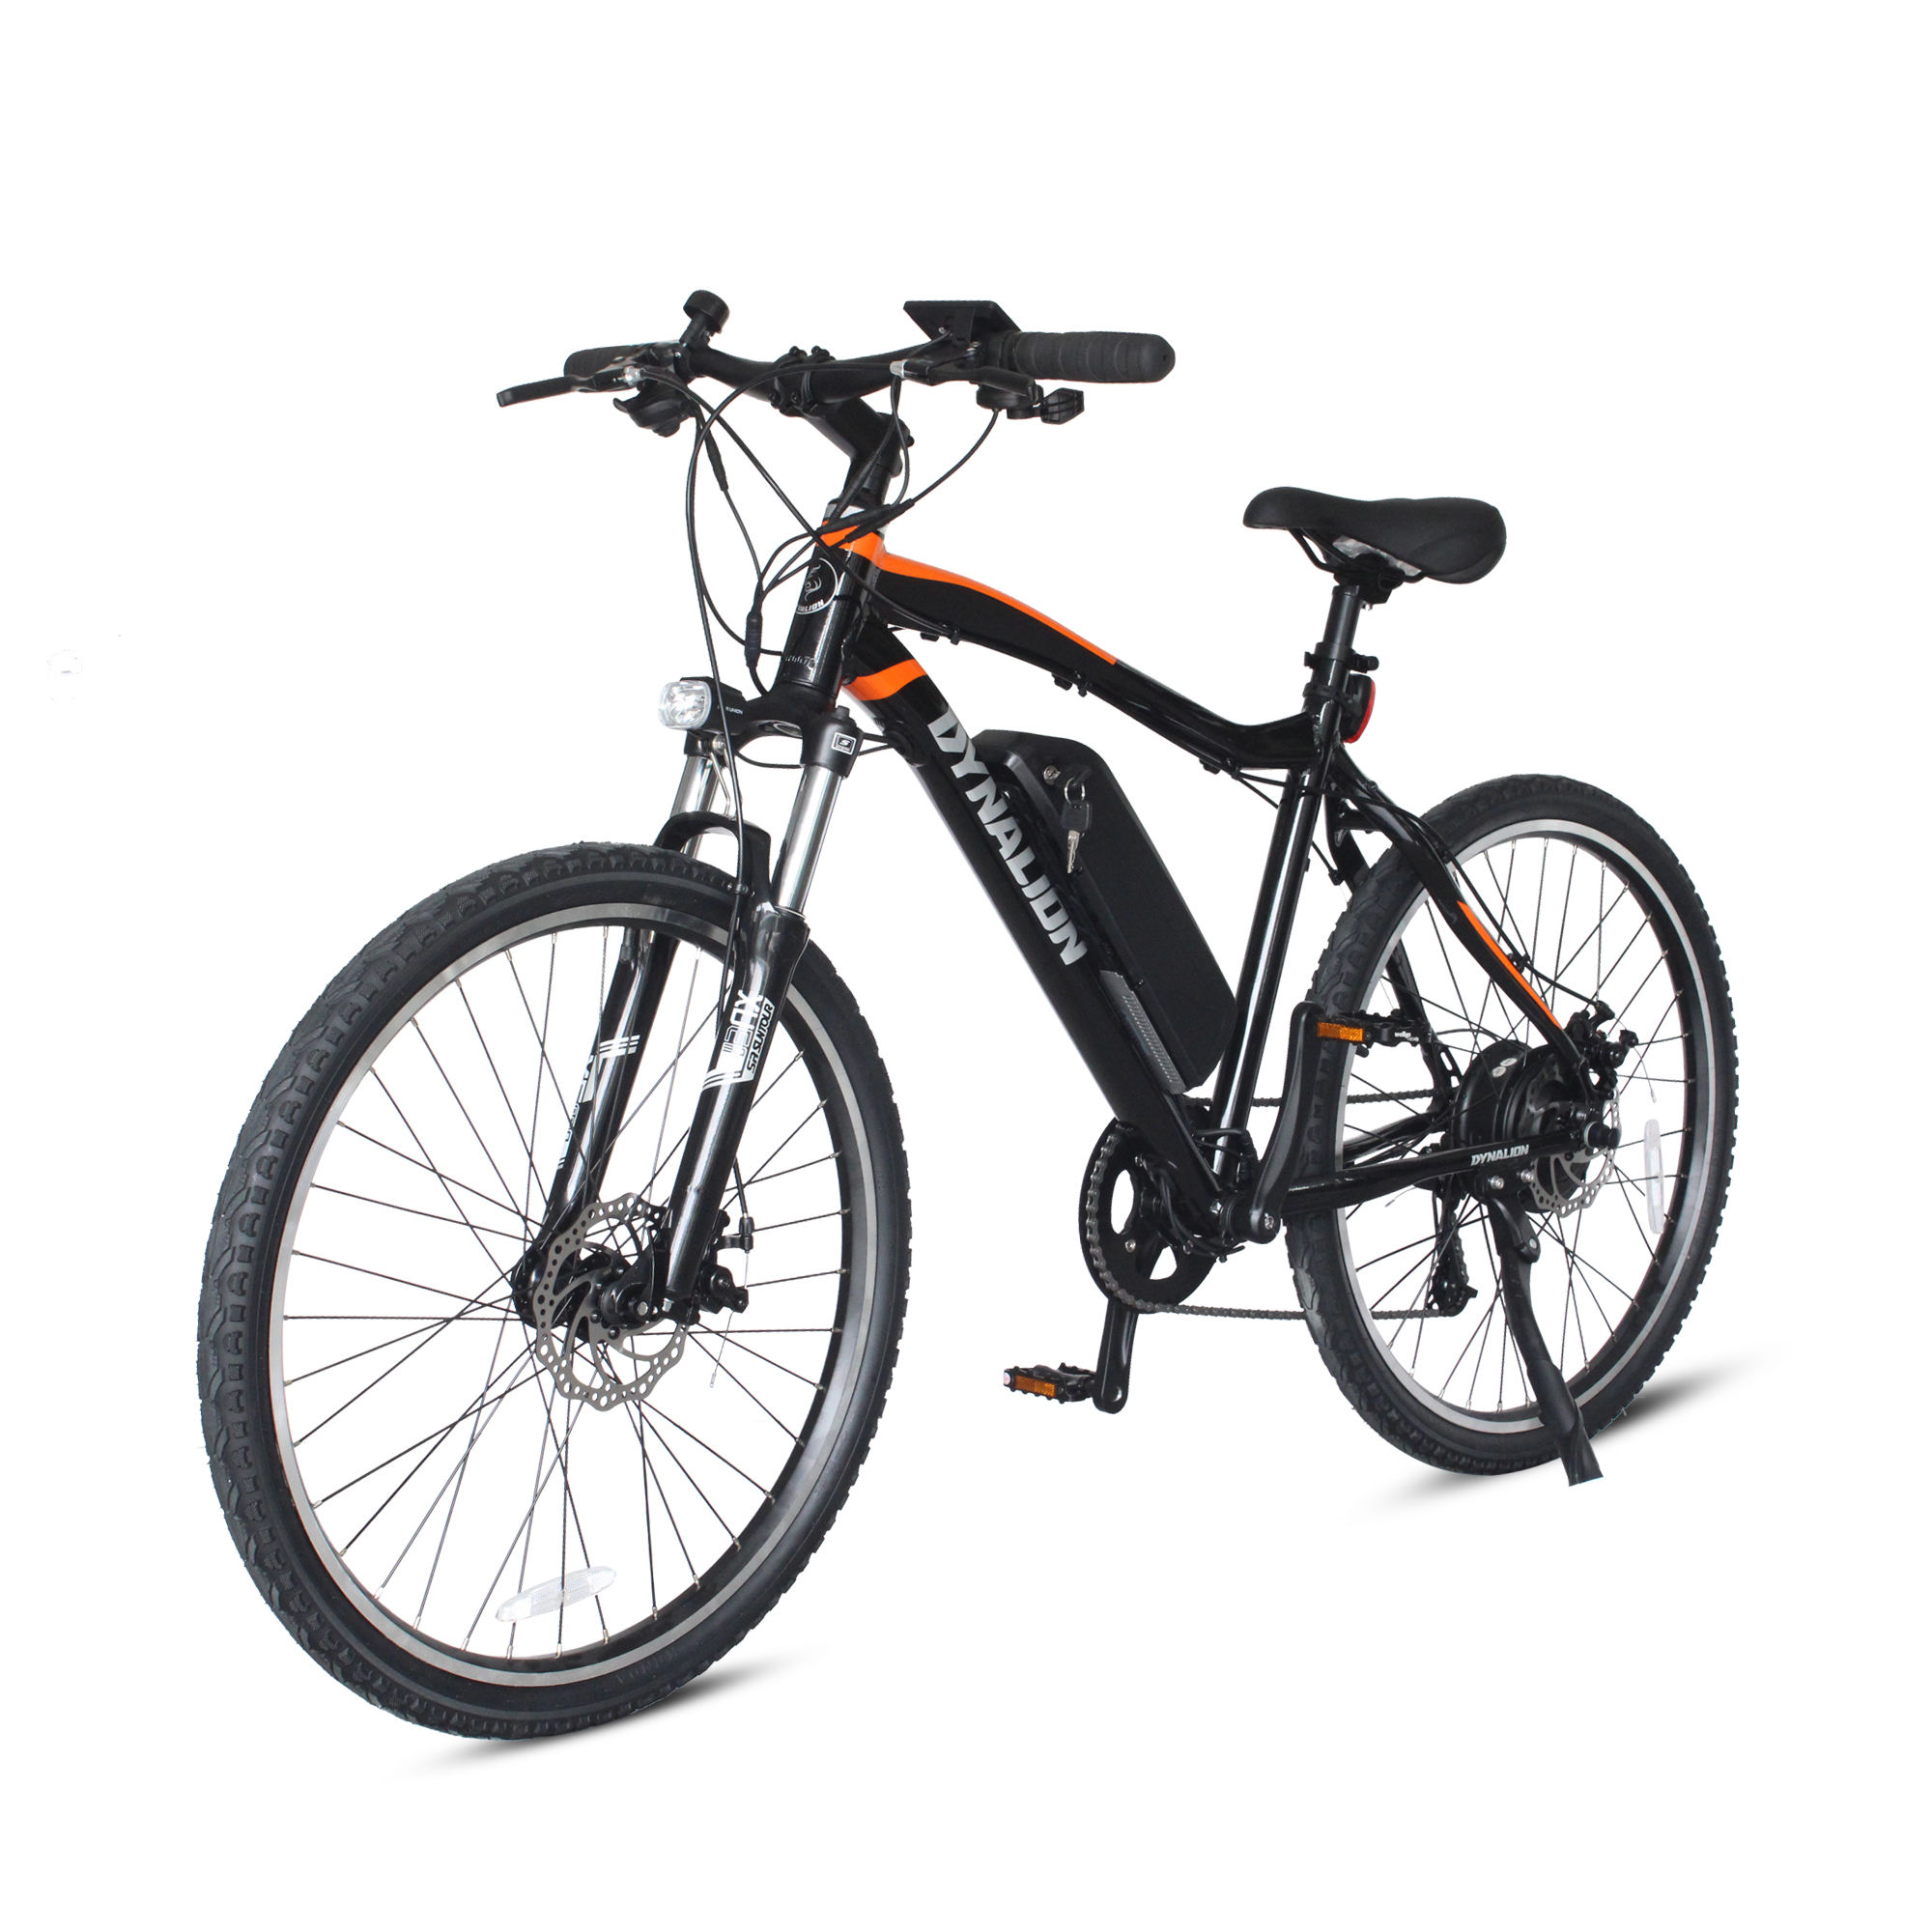 2021 new adult mountain ebike 36v 250w hub motor electric bicycle